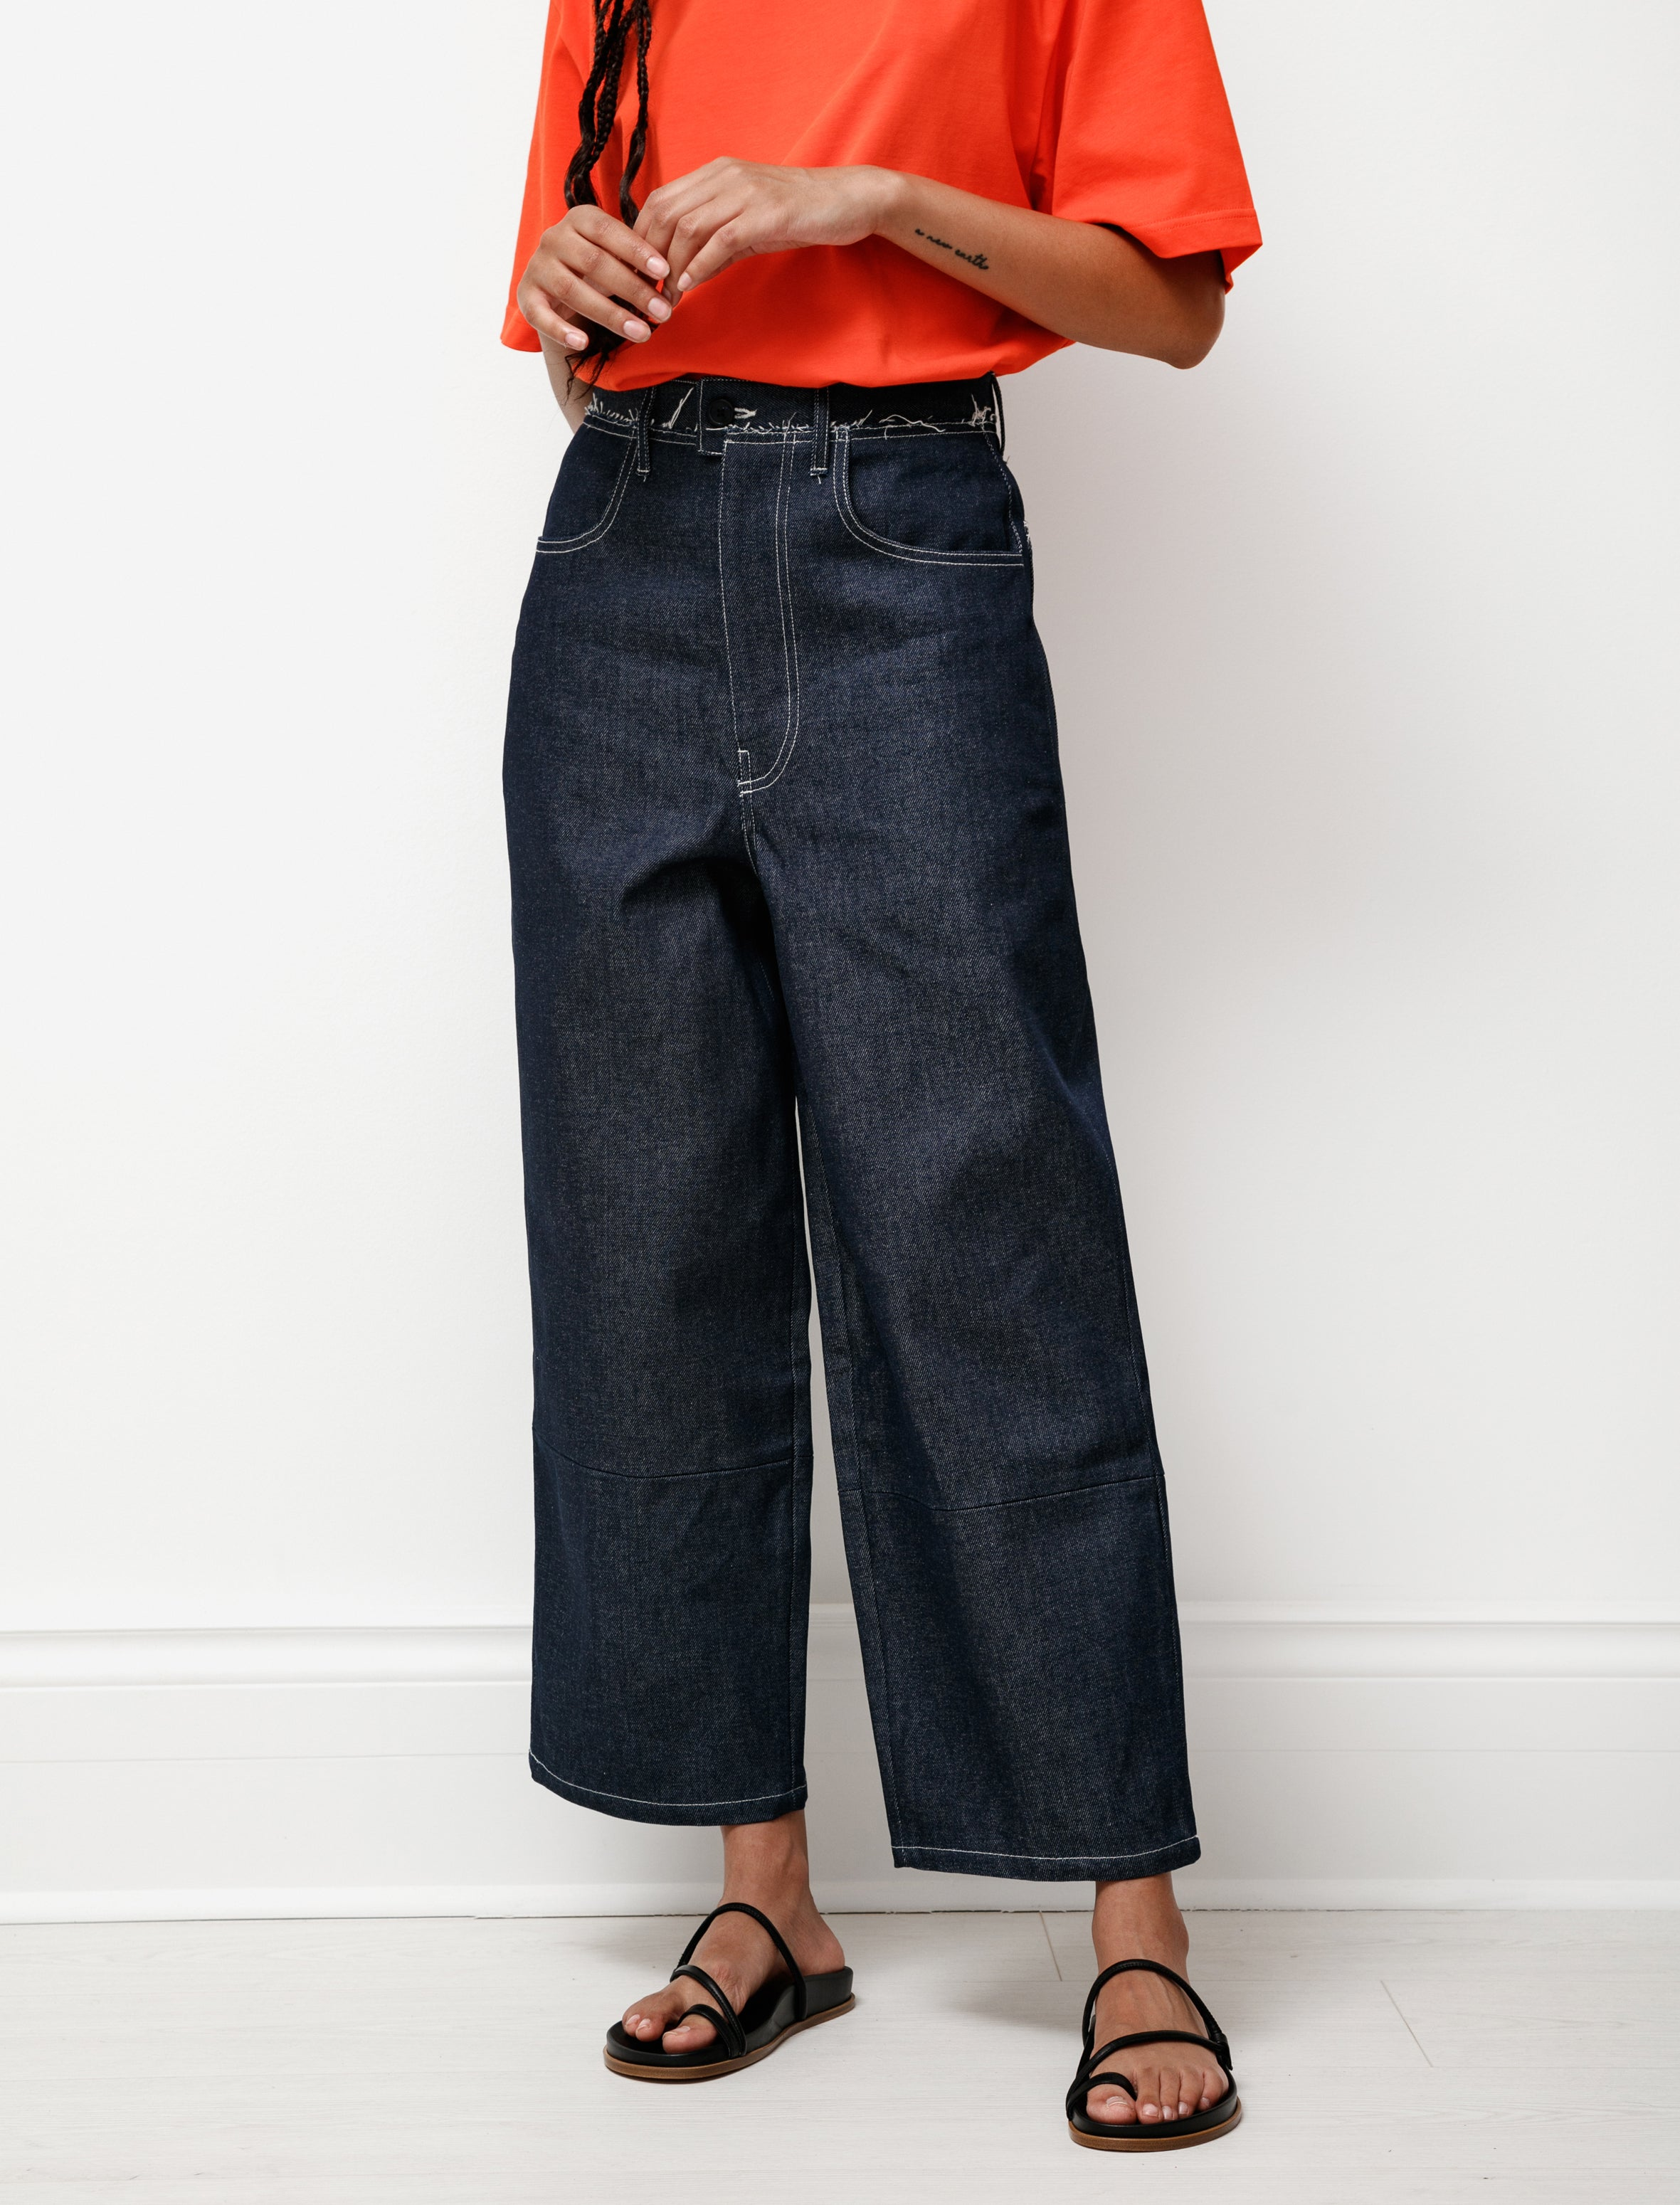 Camiel Fortgens Aubergine Denim Pants Dark Blue